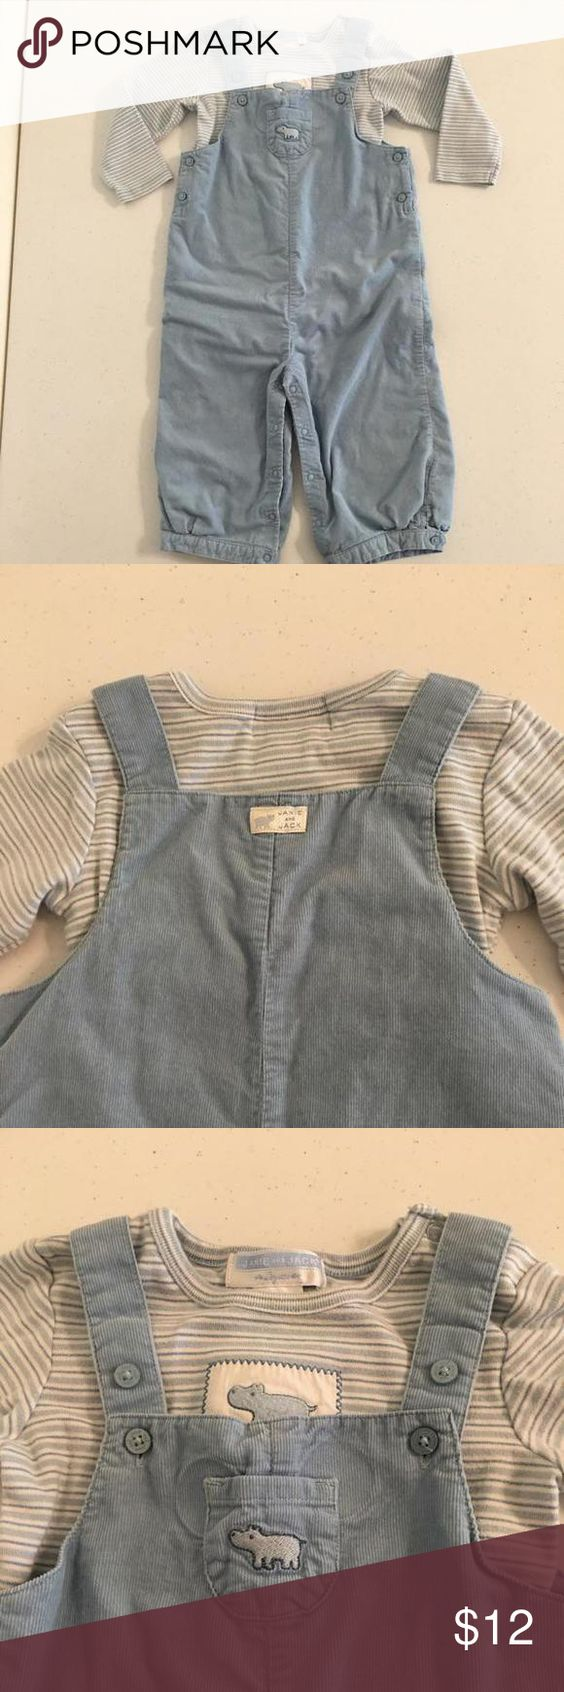 Janie and Jack Overalls and Matching Onesie Baby blue corduroy overalls with snap leg closure and button straps. Matching striped onesie. Cute little Hippo to the shirt and front pocket. Tiny mark to the back leg but is not obvious. Very precious set! Janie and Jack Shirts & Tops